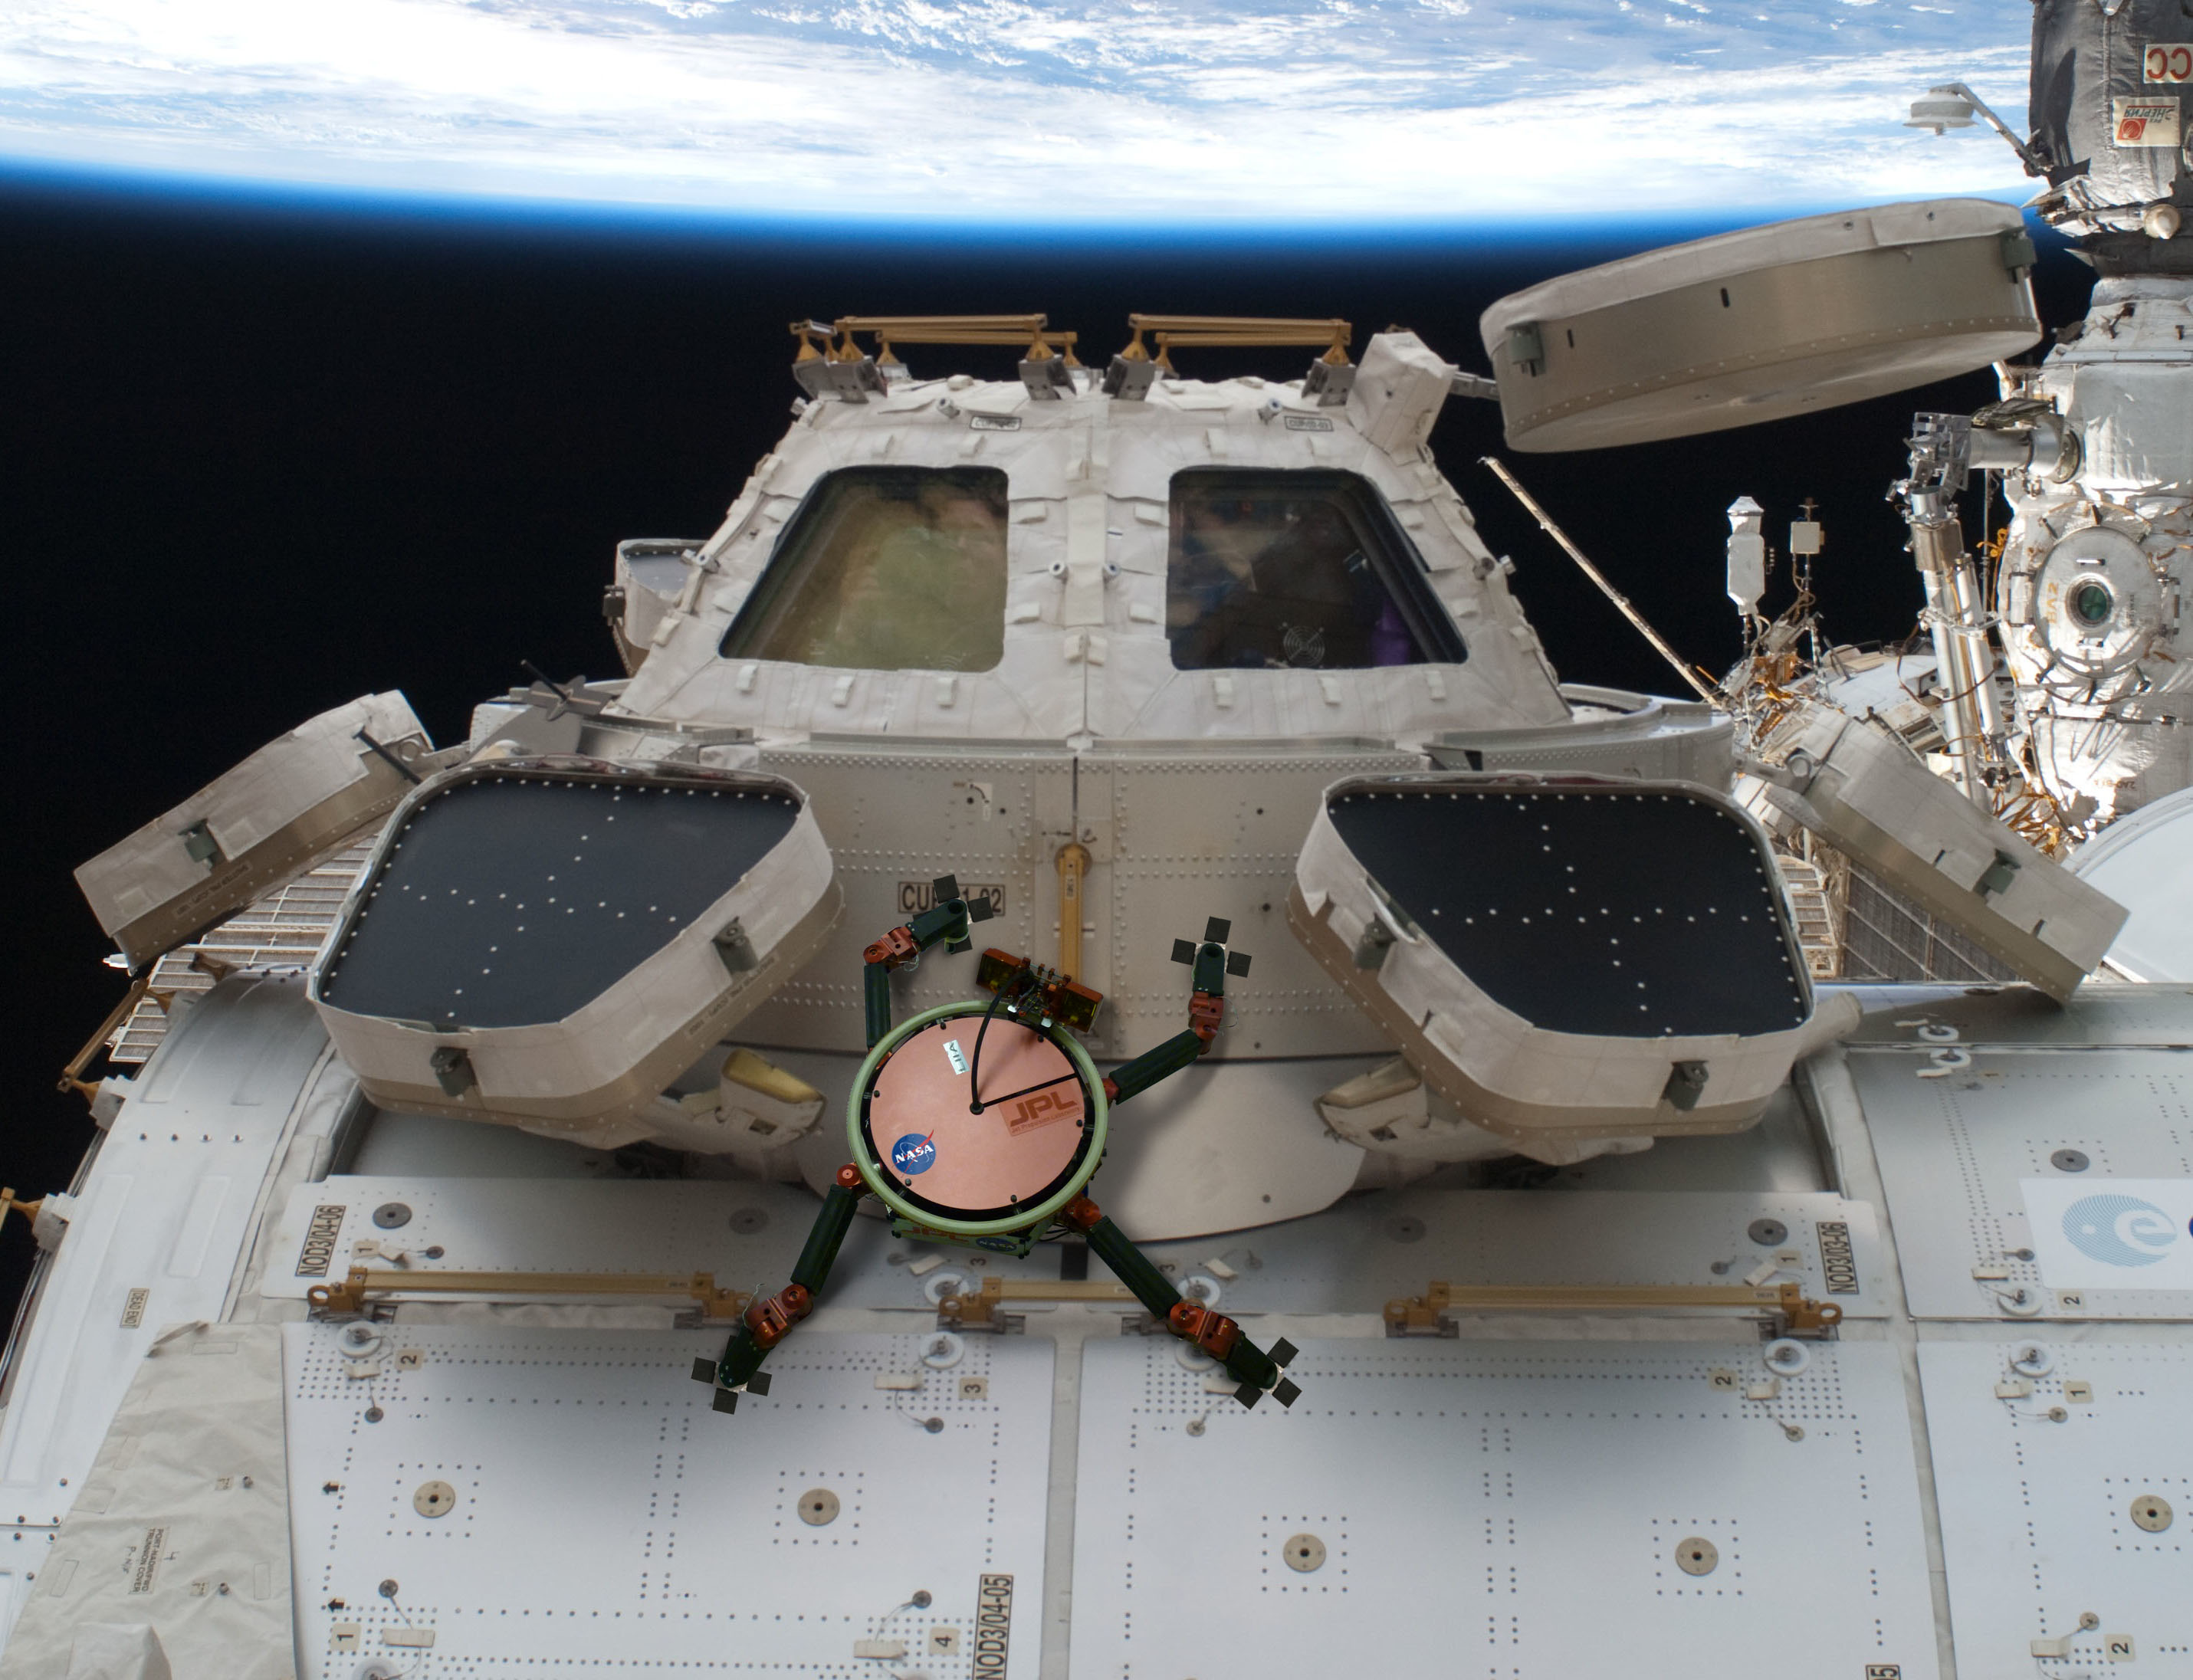 a Limbed Excursion Mechanical Utility Robot (LEMUR) climbs around the outside of the space station. The Jet Propulsion Laboratory (JPL) considered outfitting LEMUR with its gecko-imitating gripper technology